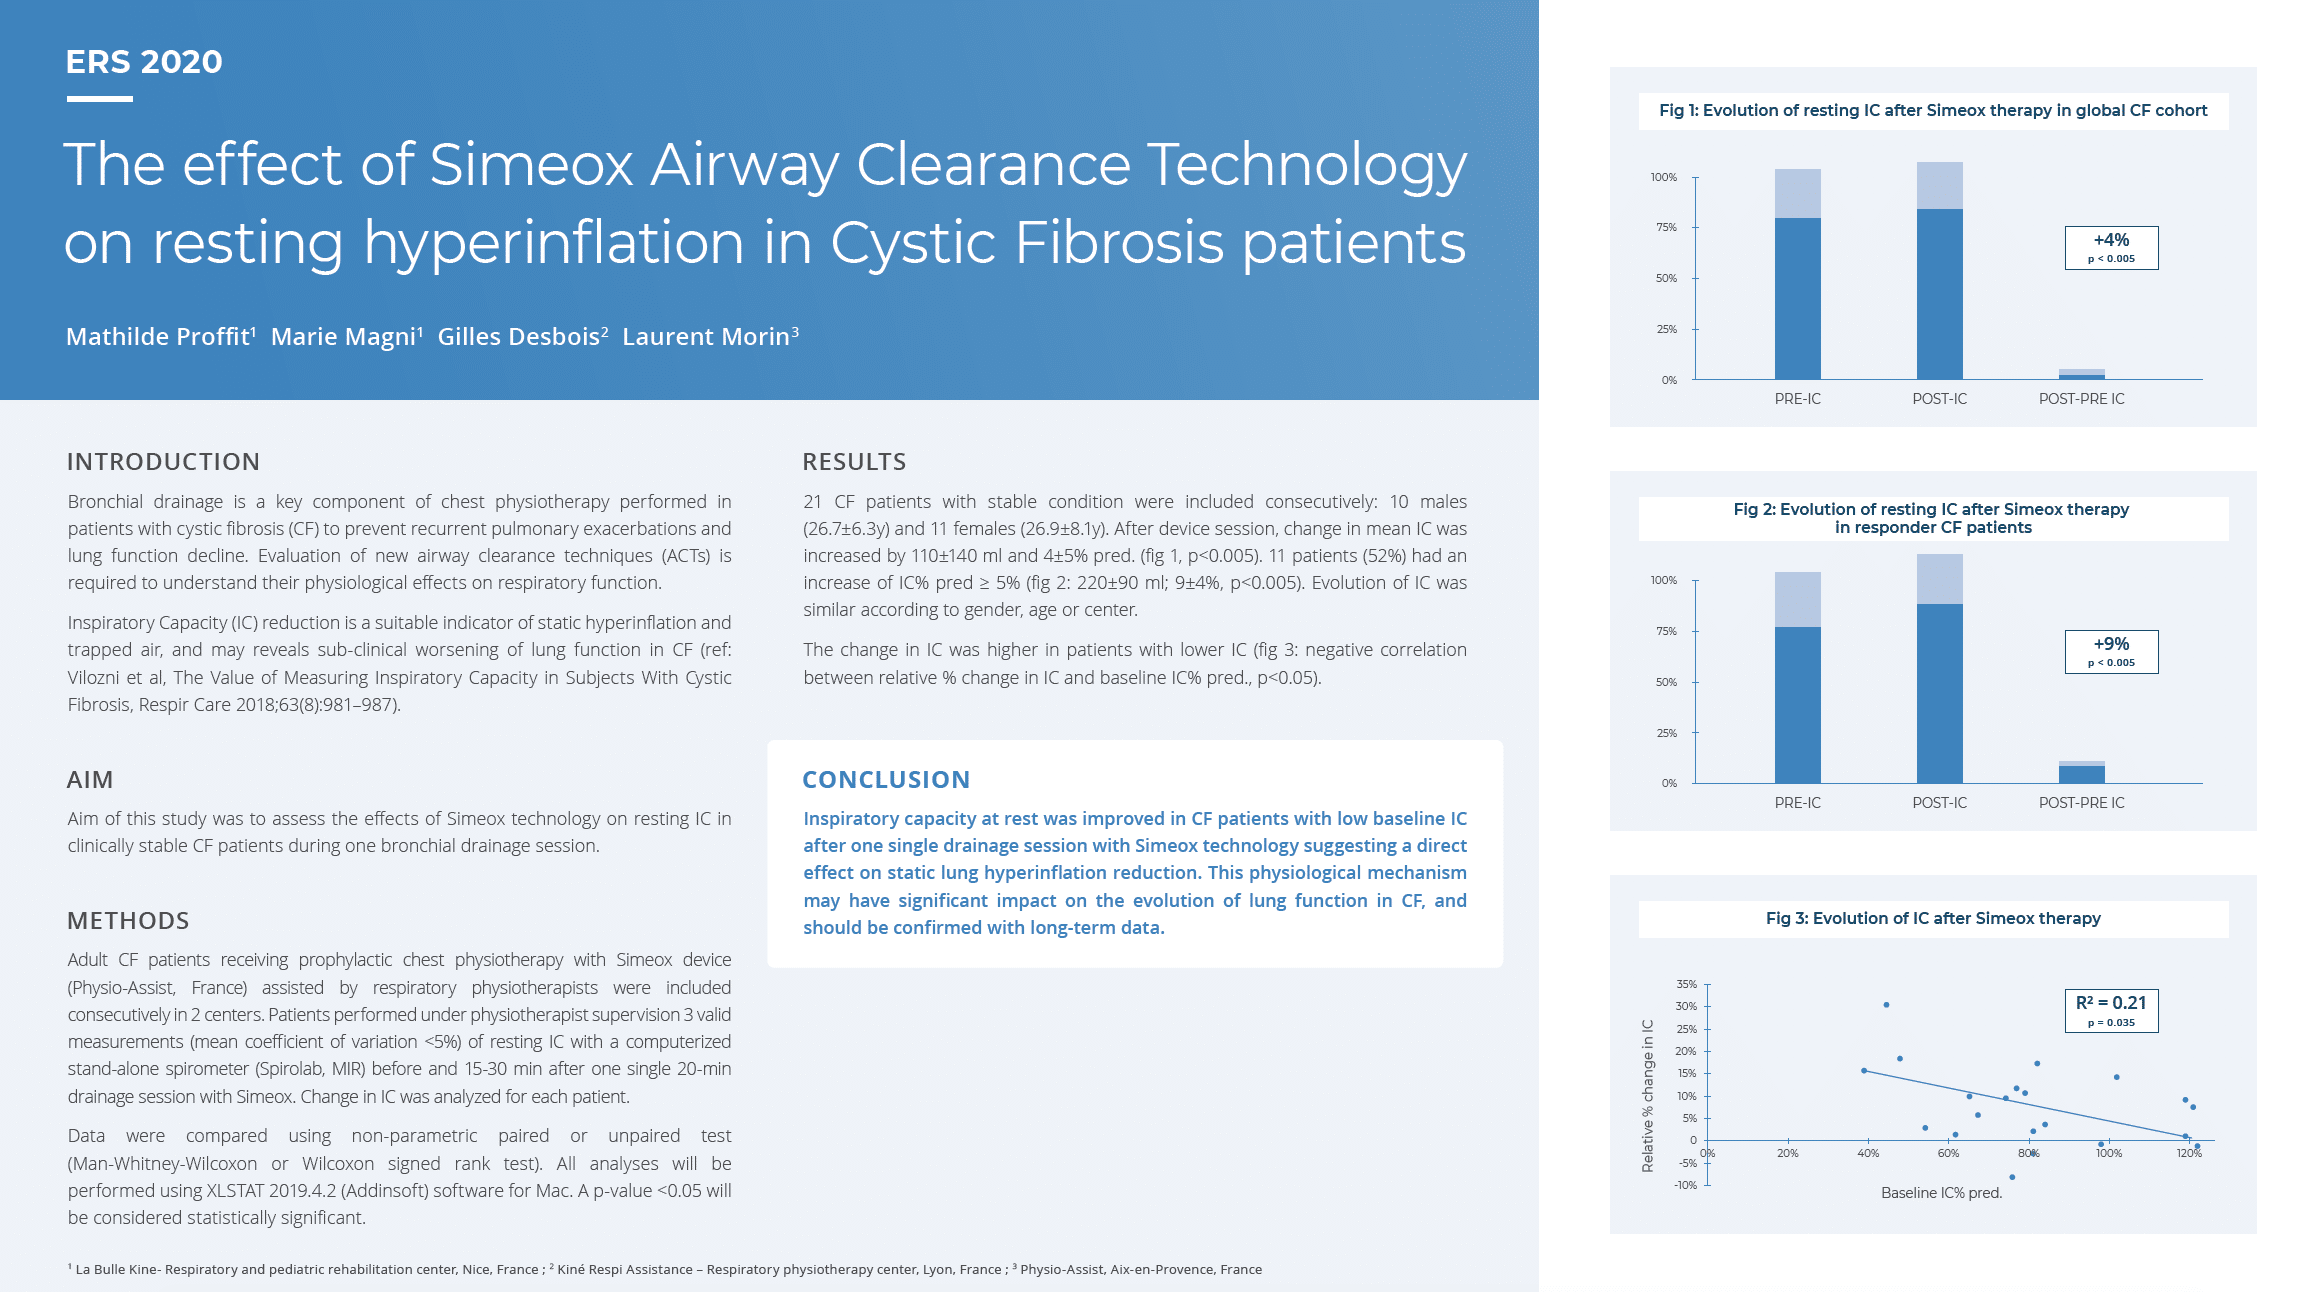 The effect of Simeox Airway Clearance Technology on resting hyperinflation in Cystic Fibrosis patients